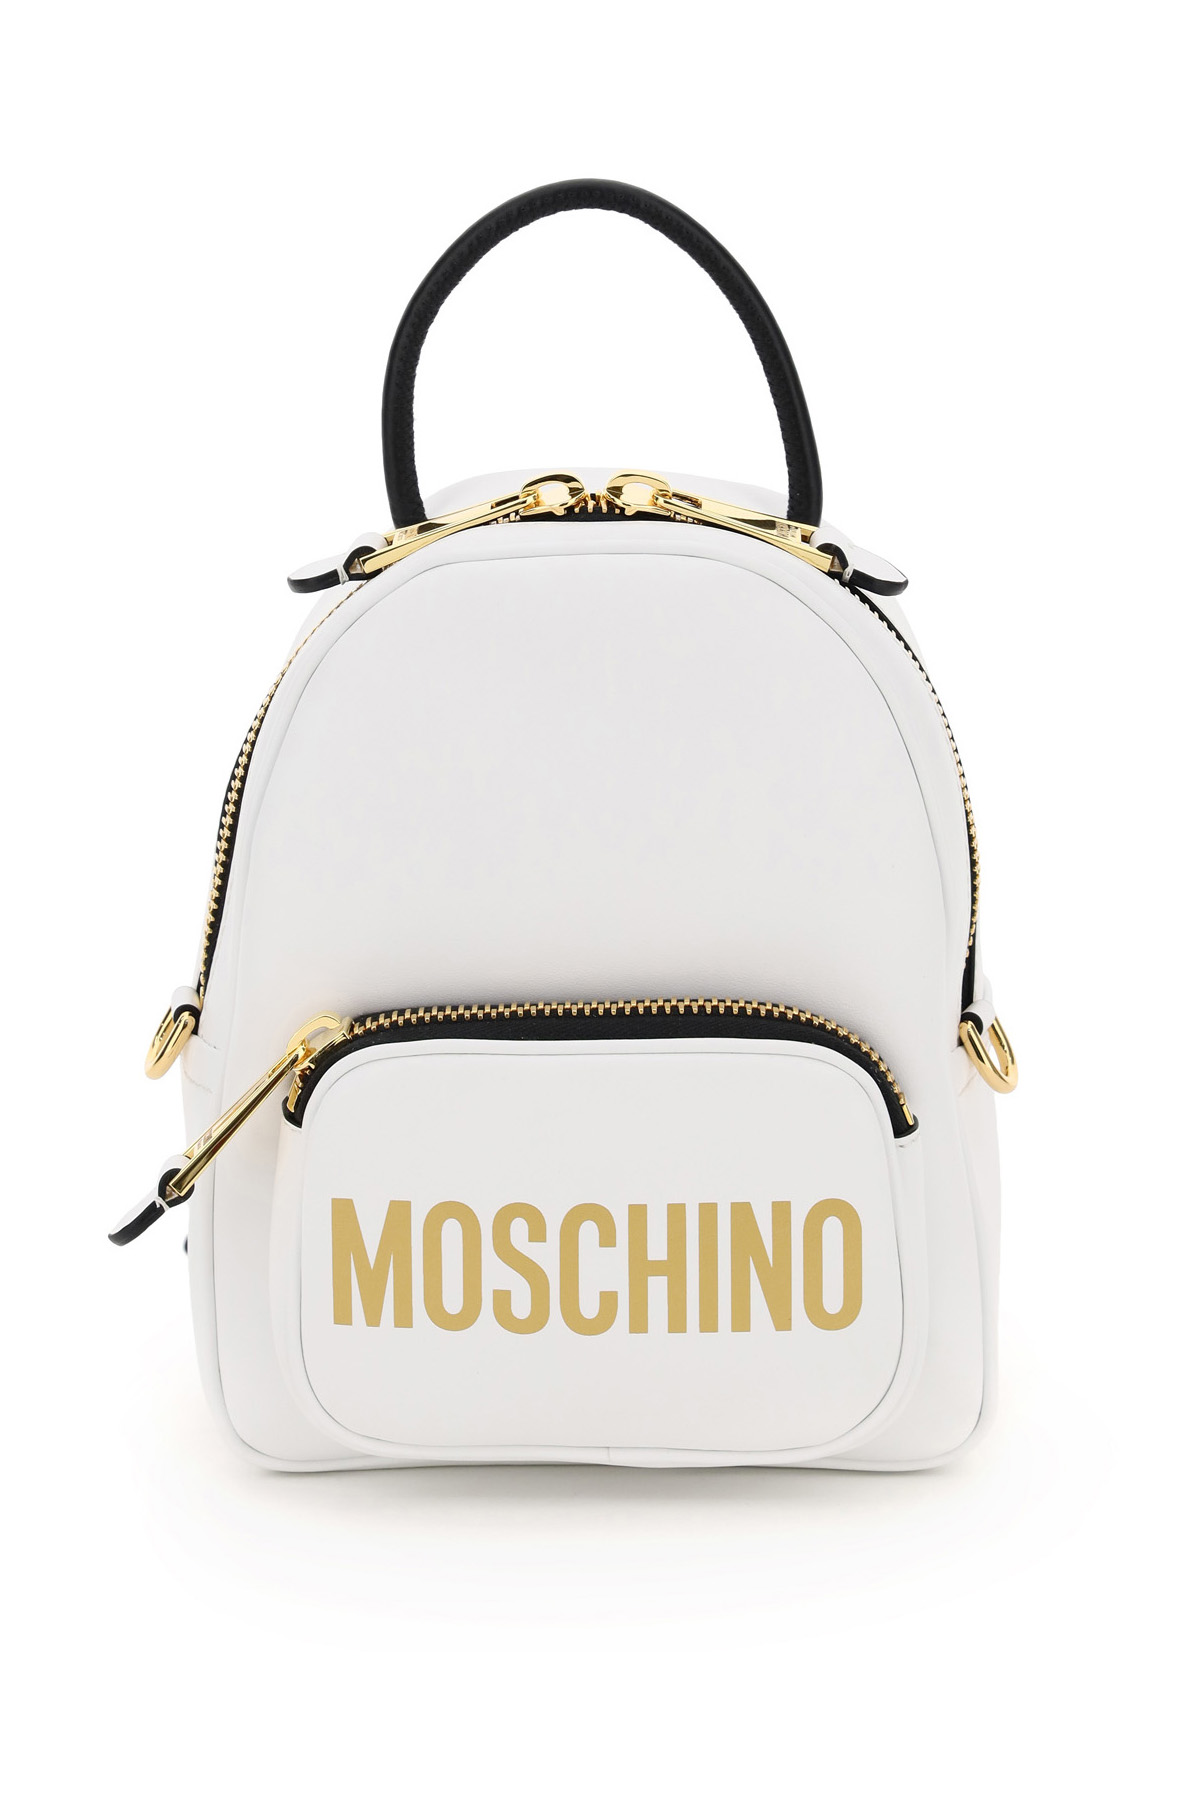 MOSCHINO SMALL BACKPACK LOGO PRINT OS White, Black, Gold Leather